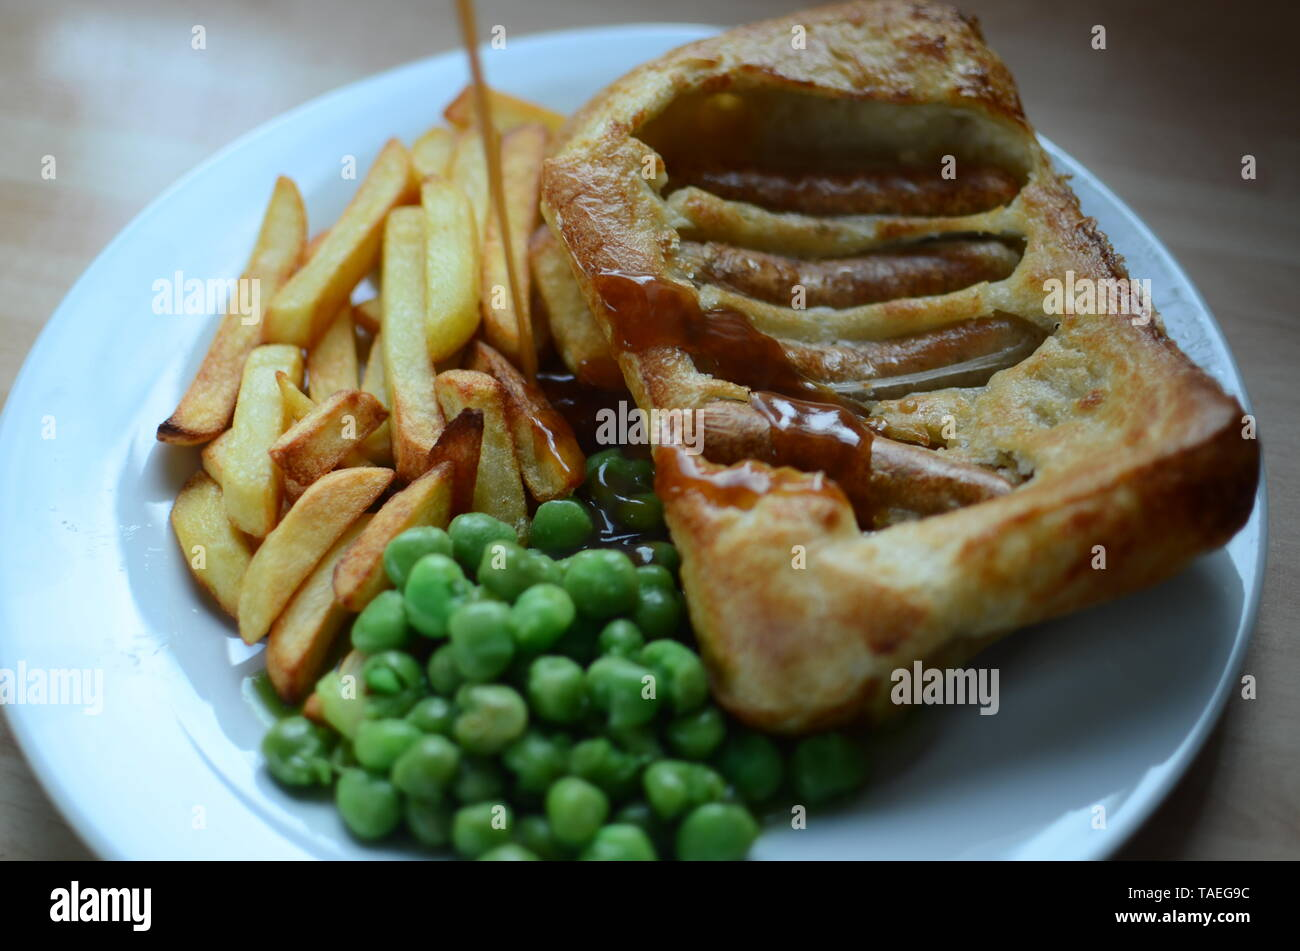 Home cooked Toad in the hole (sausages baked in batter, England) Stock Photo